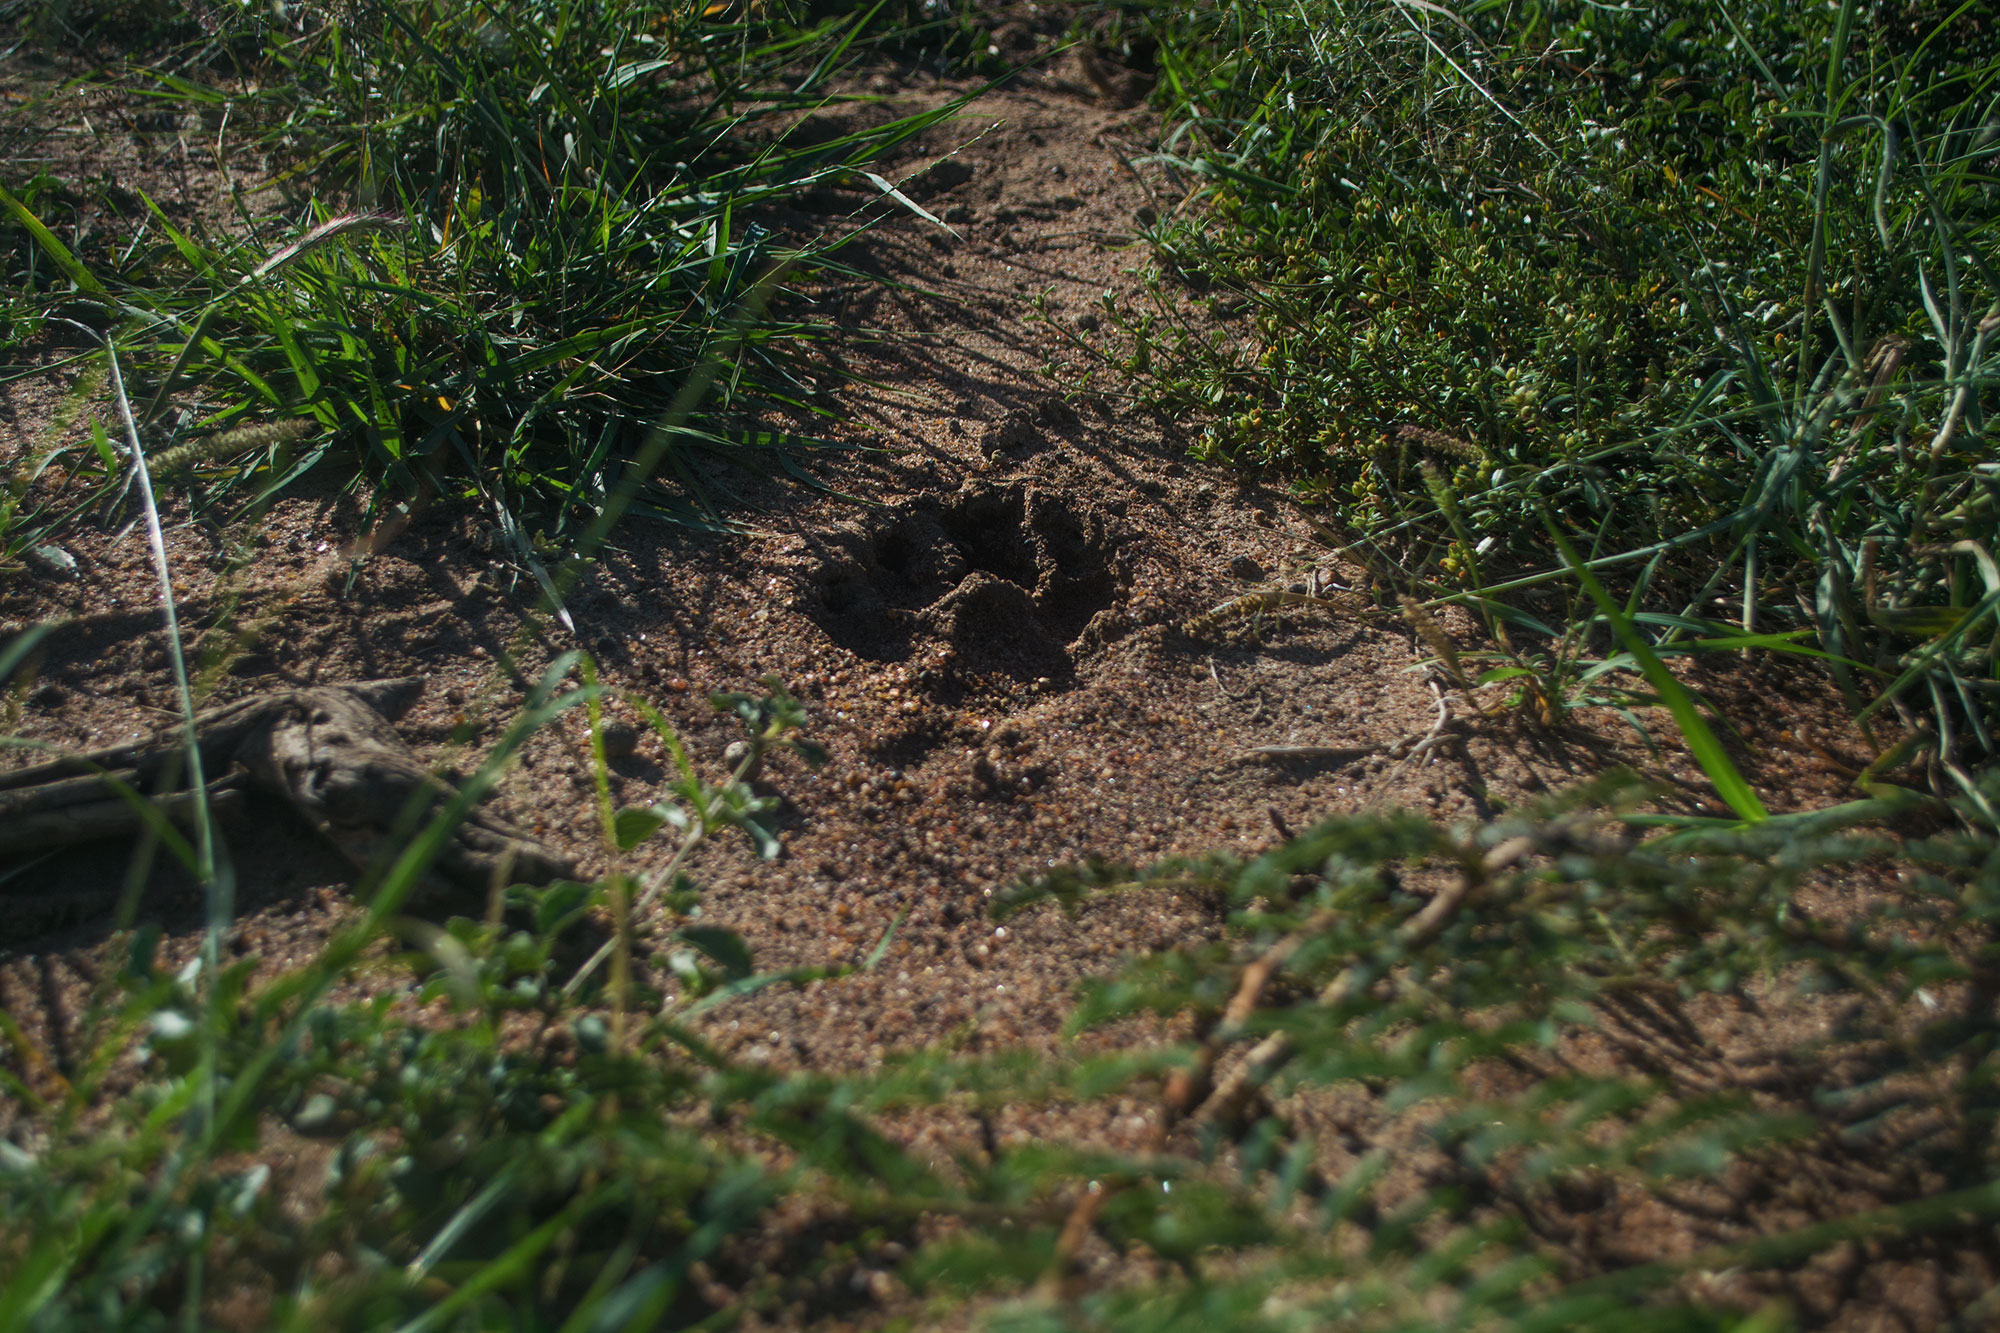 The hyena track we found was one of the first. Check out the full story on our instagram  here .